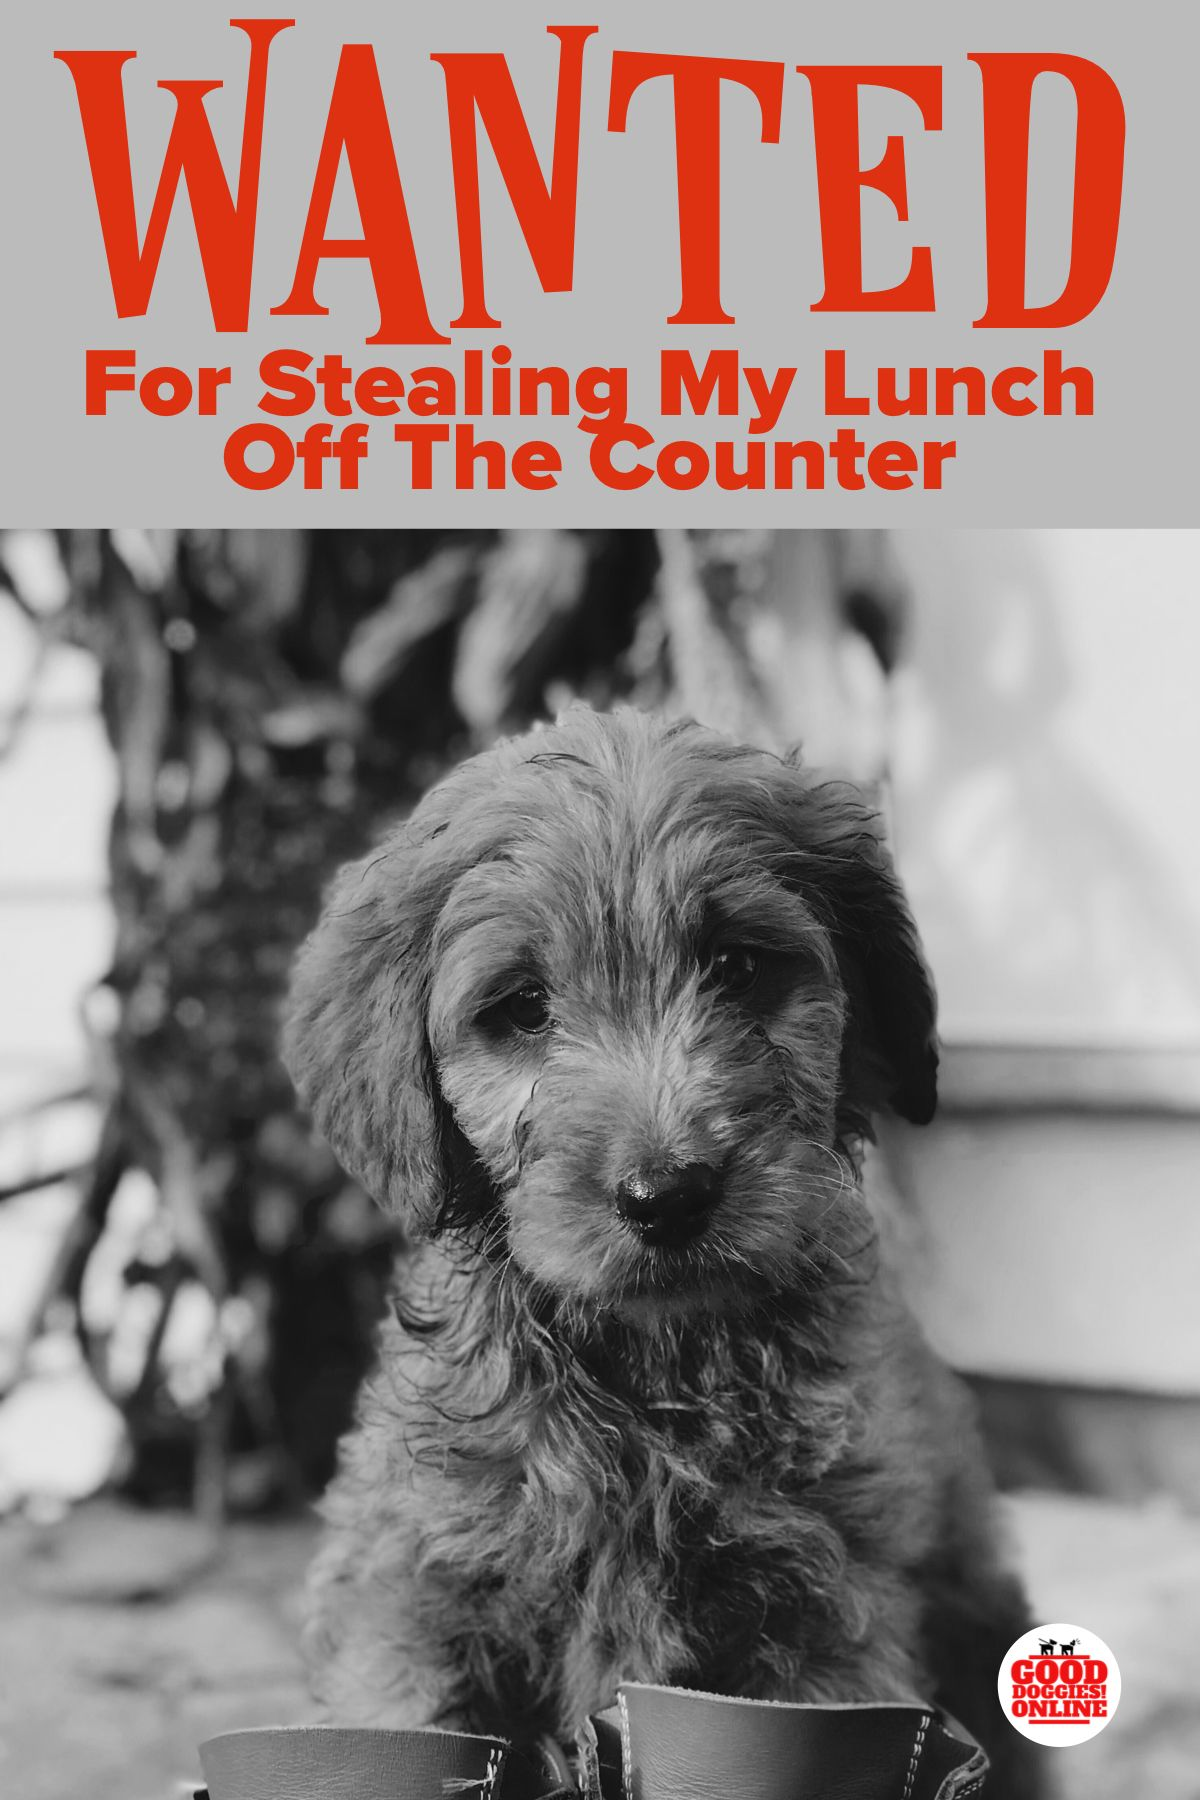 5 Tips To Stop Your Dog From Stealing Your Food Gooddoggies